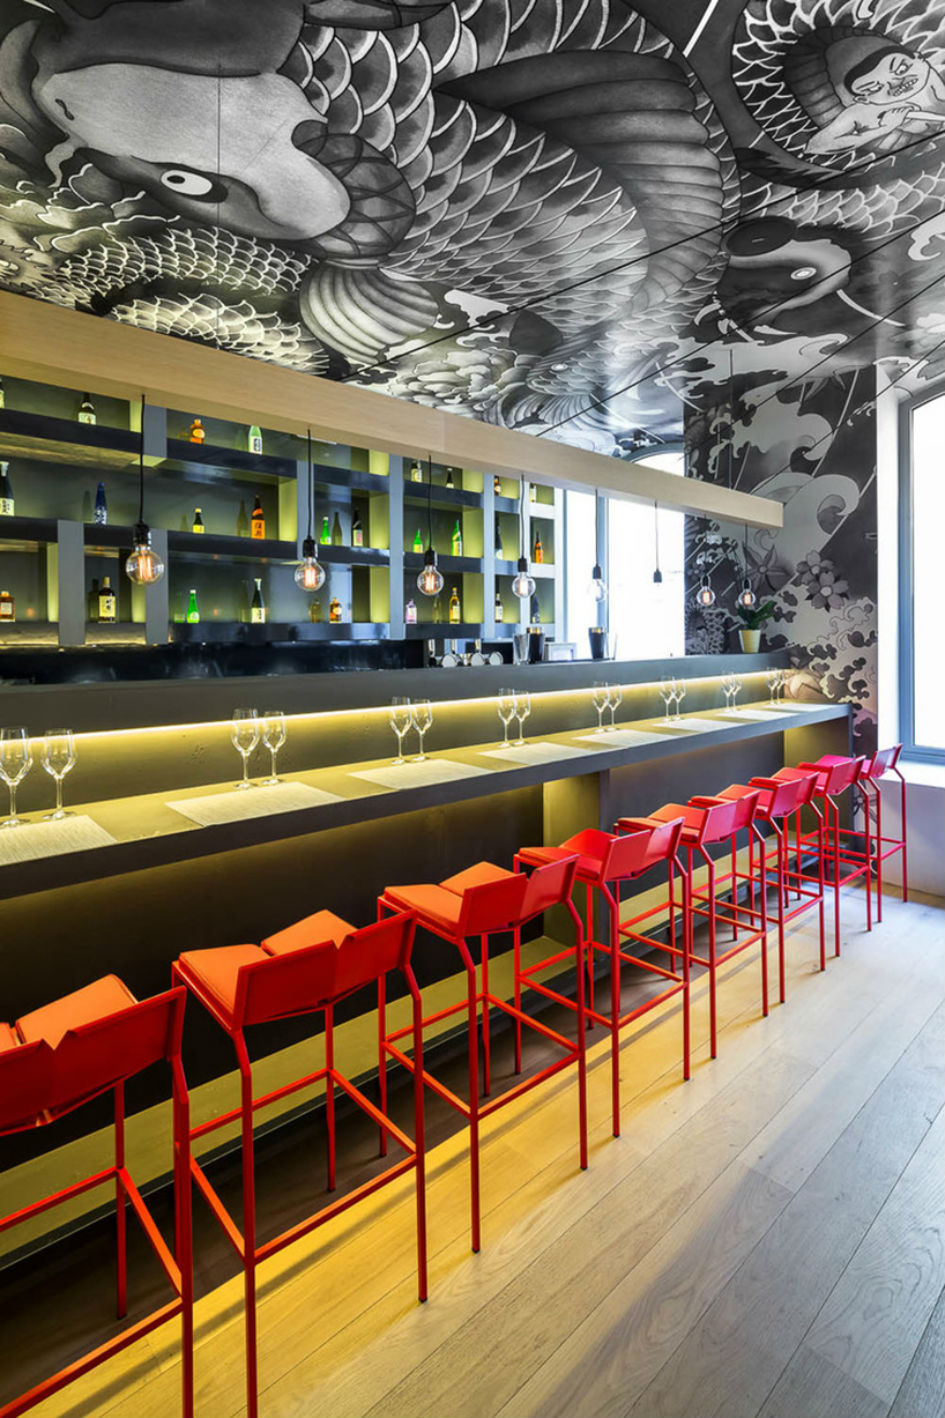 Vincent Coste Designs Japanese Restaurant With Tattoos (5)